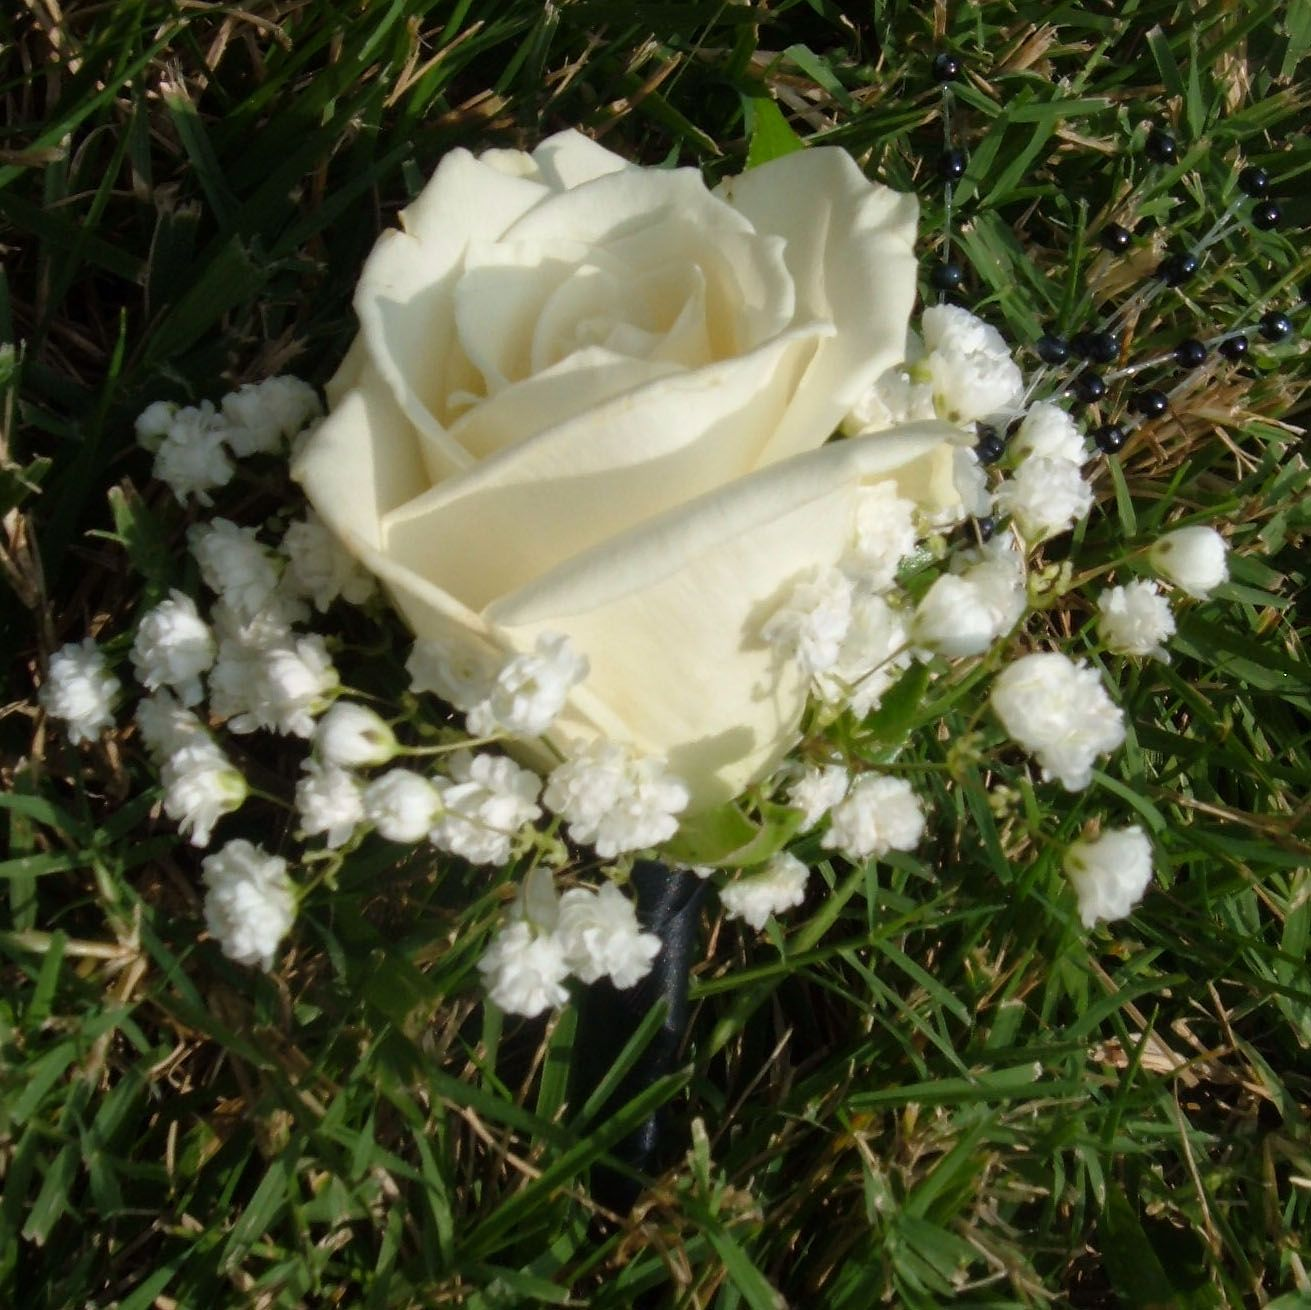 White Garden Rose Boutonniere white rose boutonniere with babys breath and stem wrapped in black